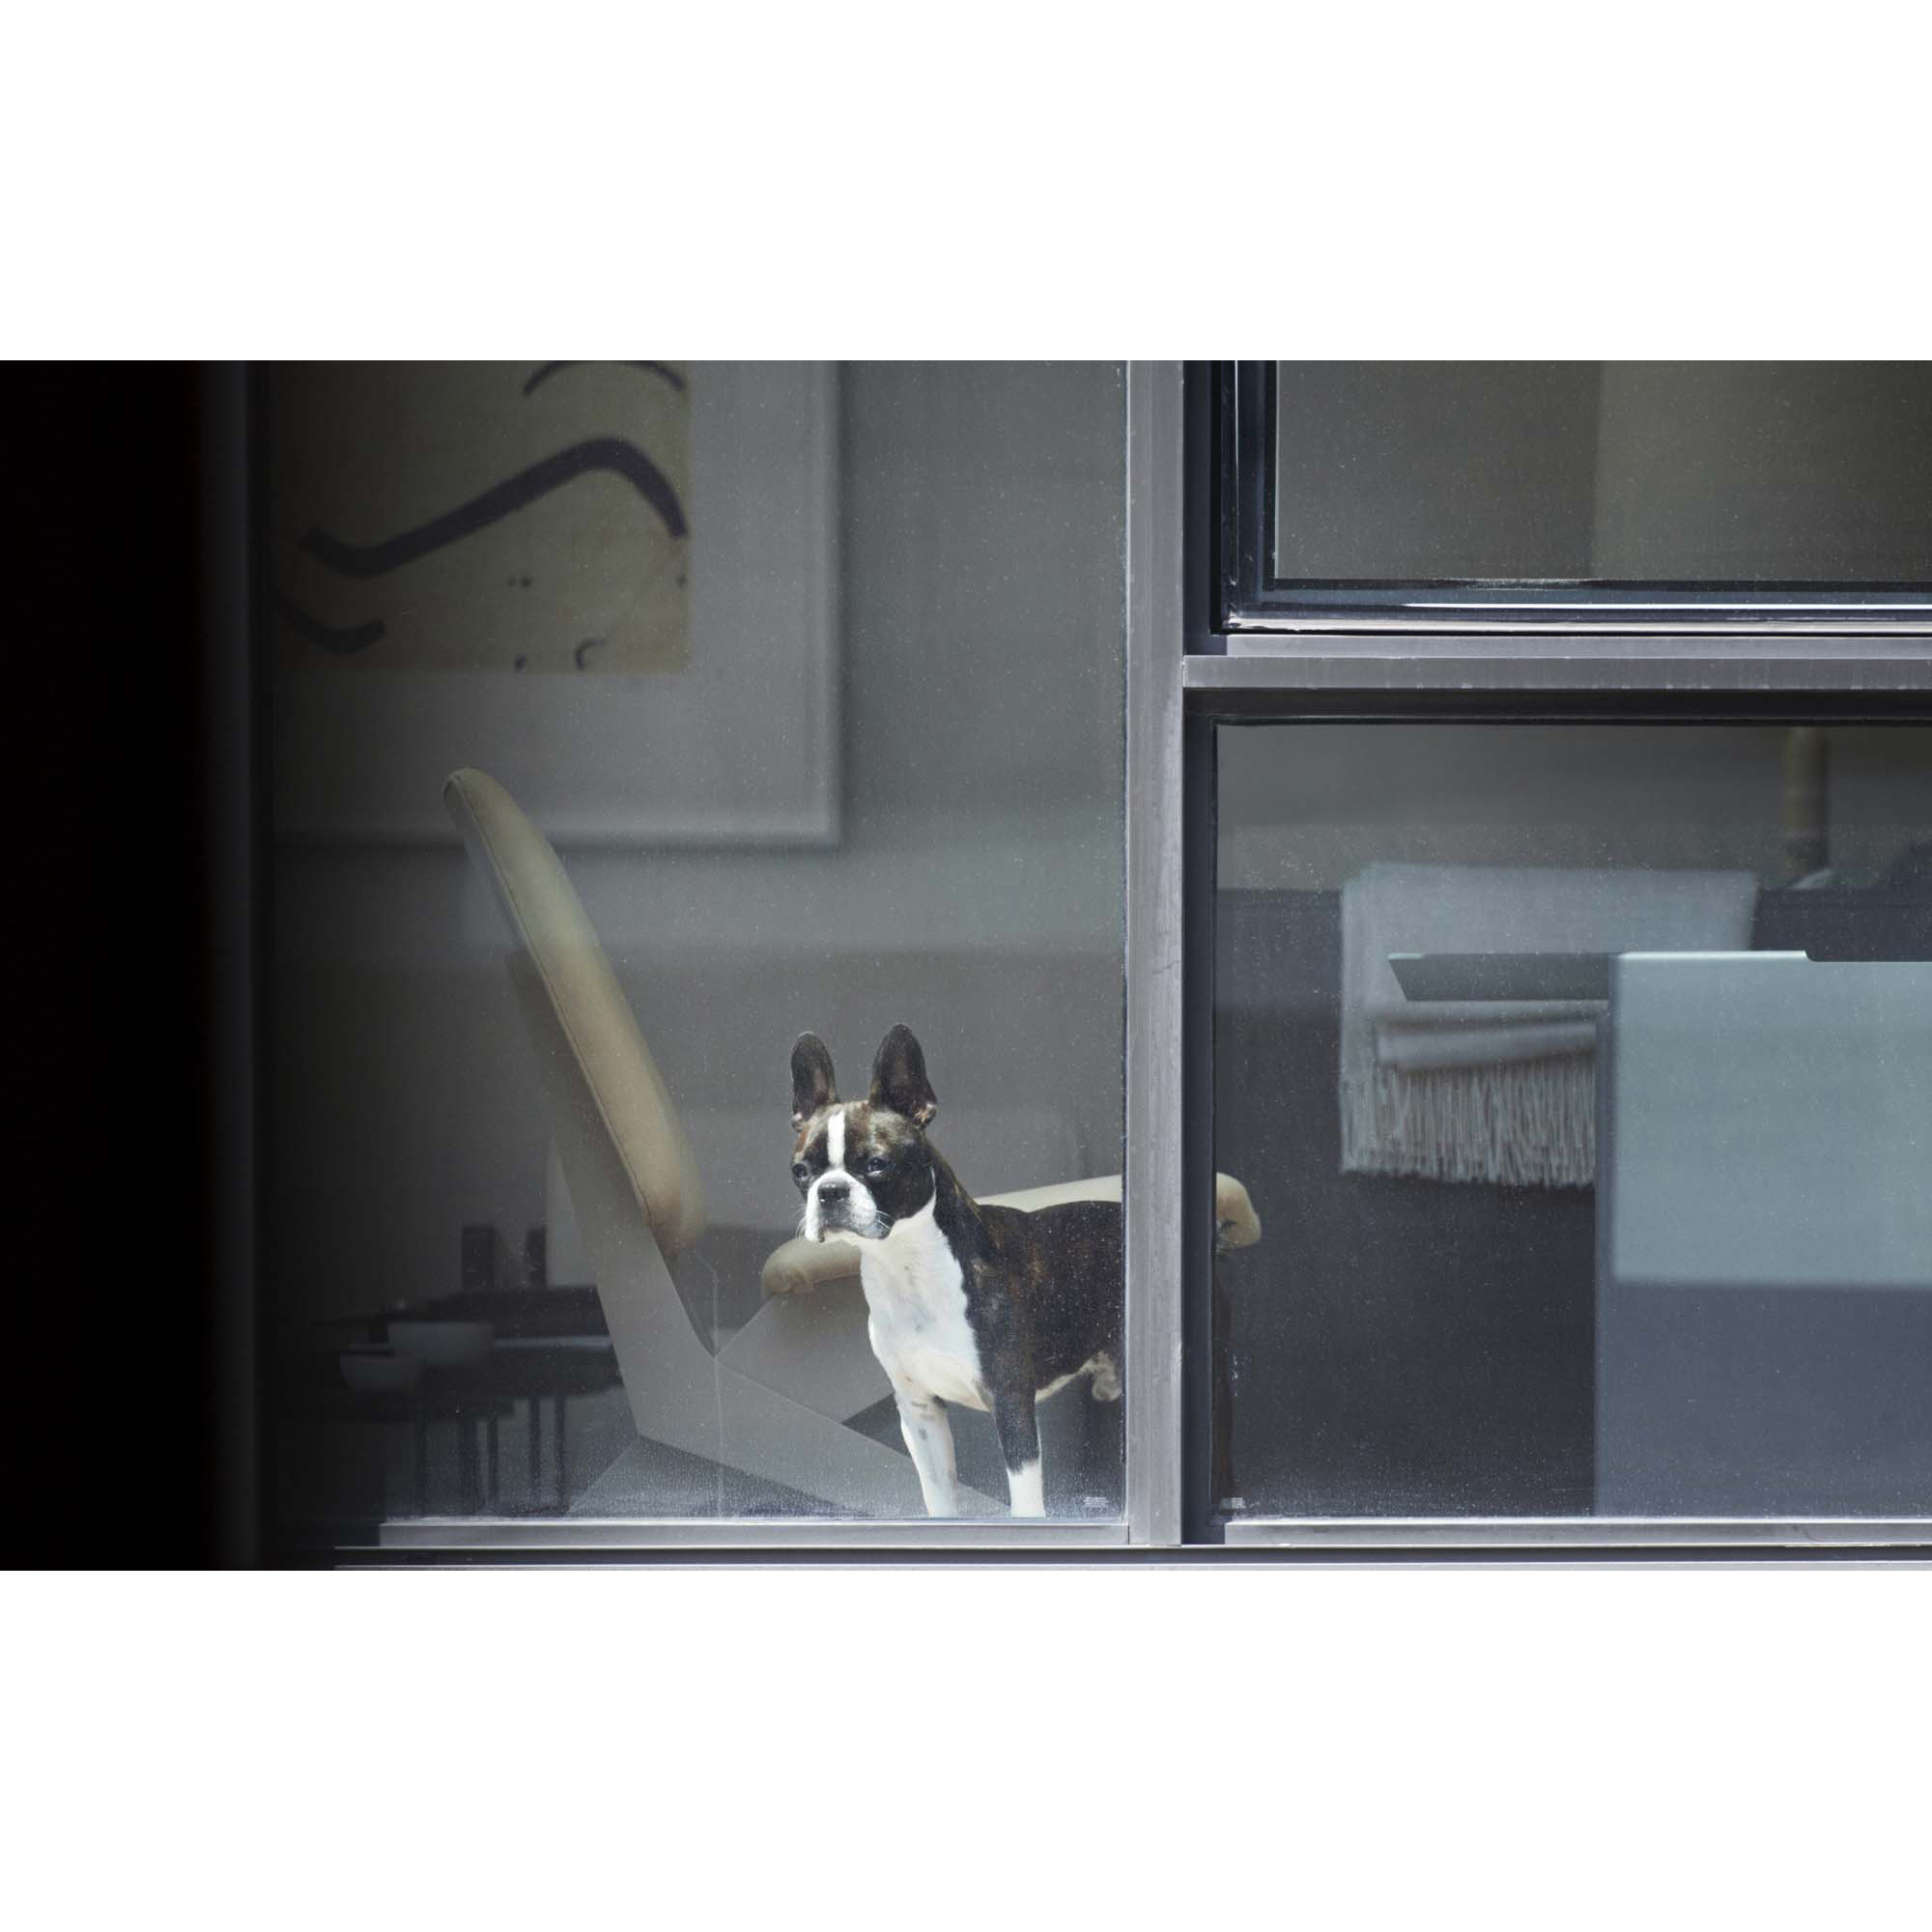 Arne Svenson, The Neighbors #15, 2012, pigment print, 30 x 48 inches